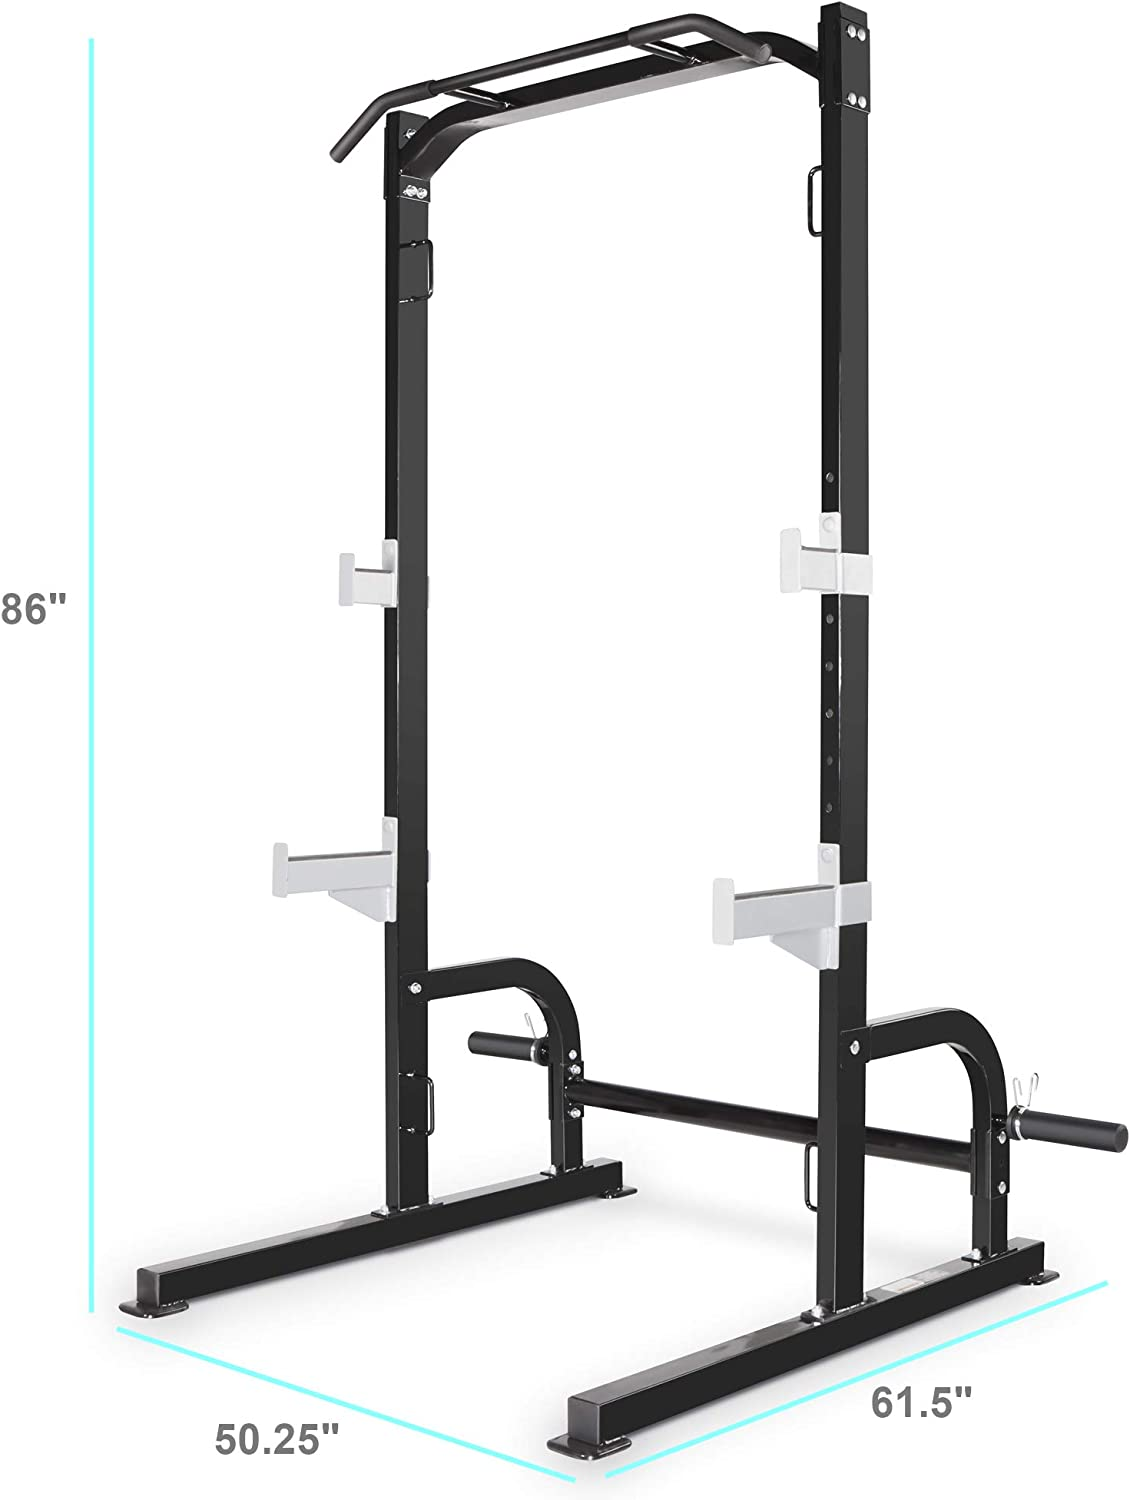 Marcy Olympic Cage Home Gym System – Multifunction Squat Rack, Customizable Training Station SM-8117